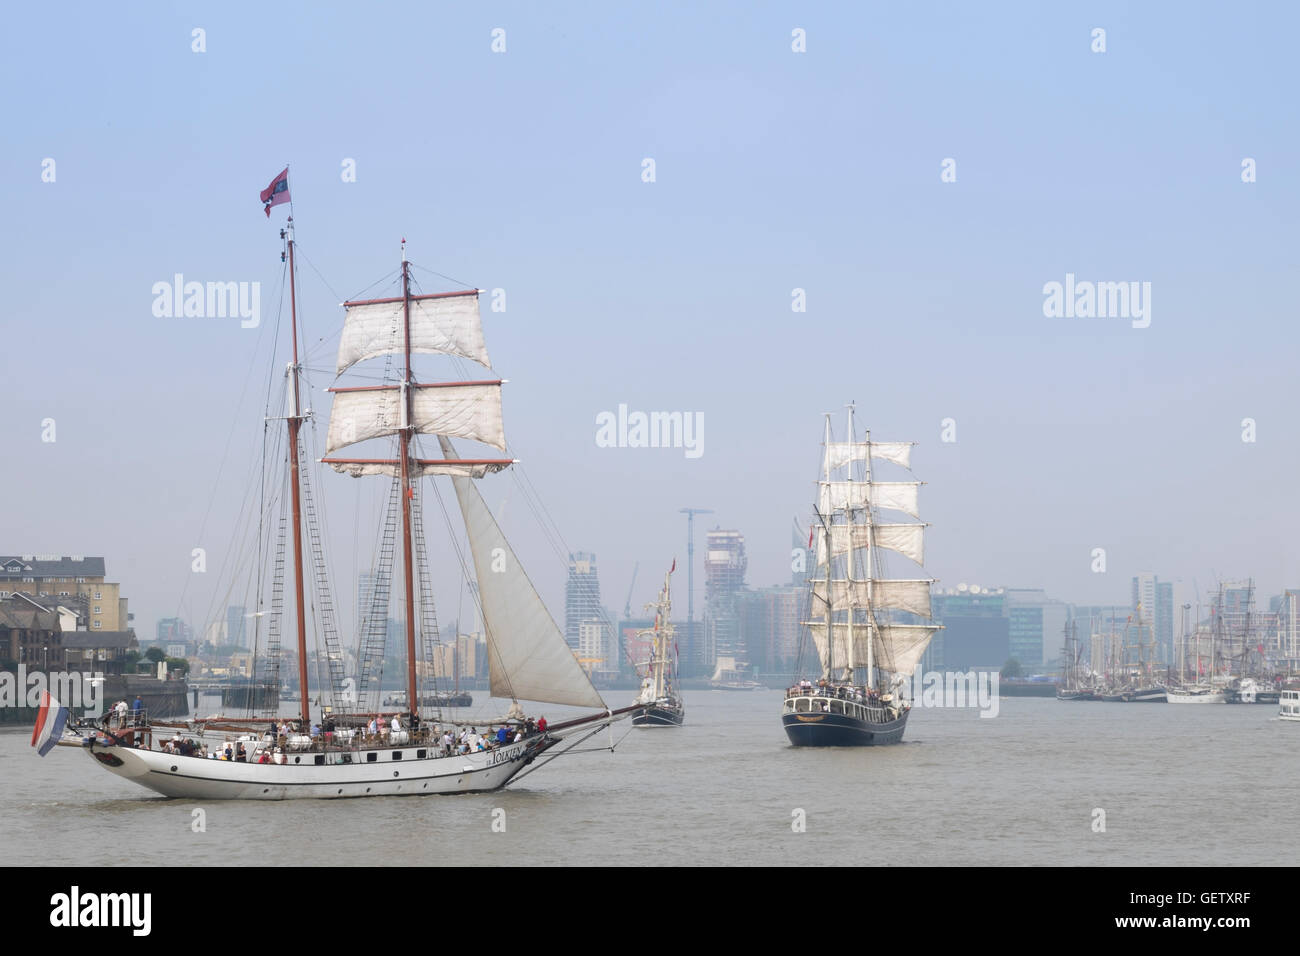 Sailing ships taking part in the 2014 London Tall Ships festival. - Stock Image